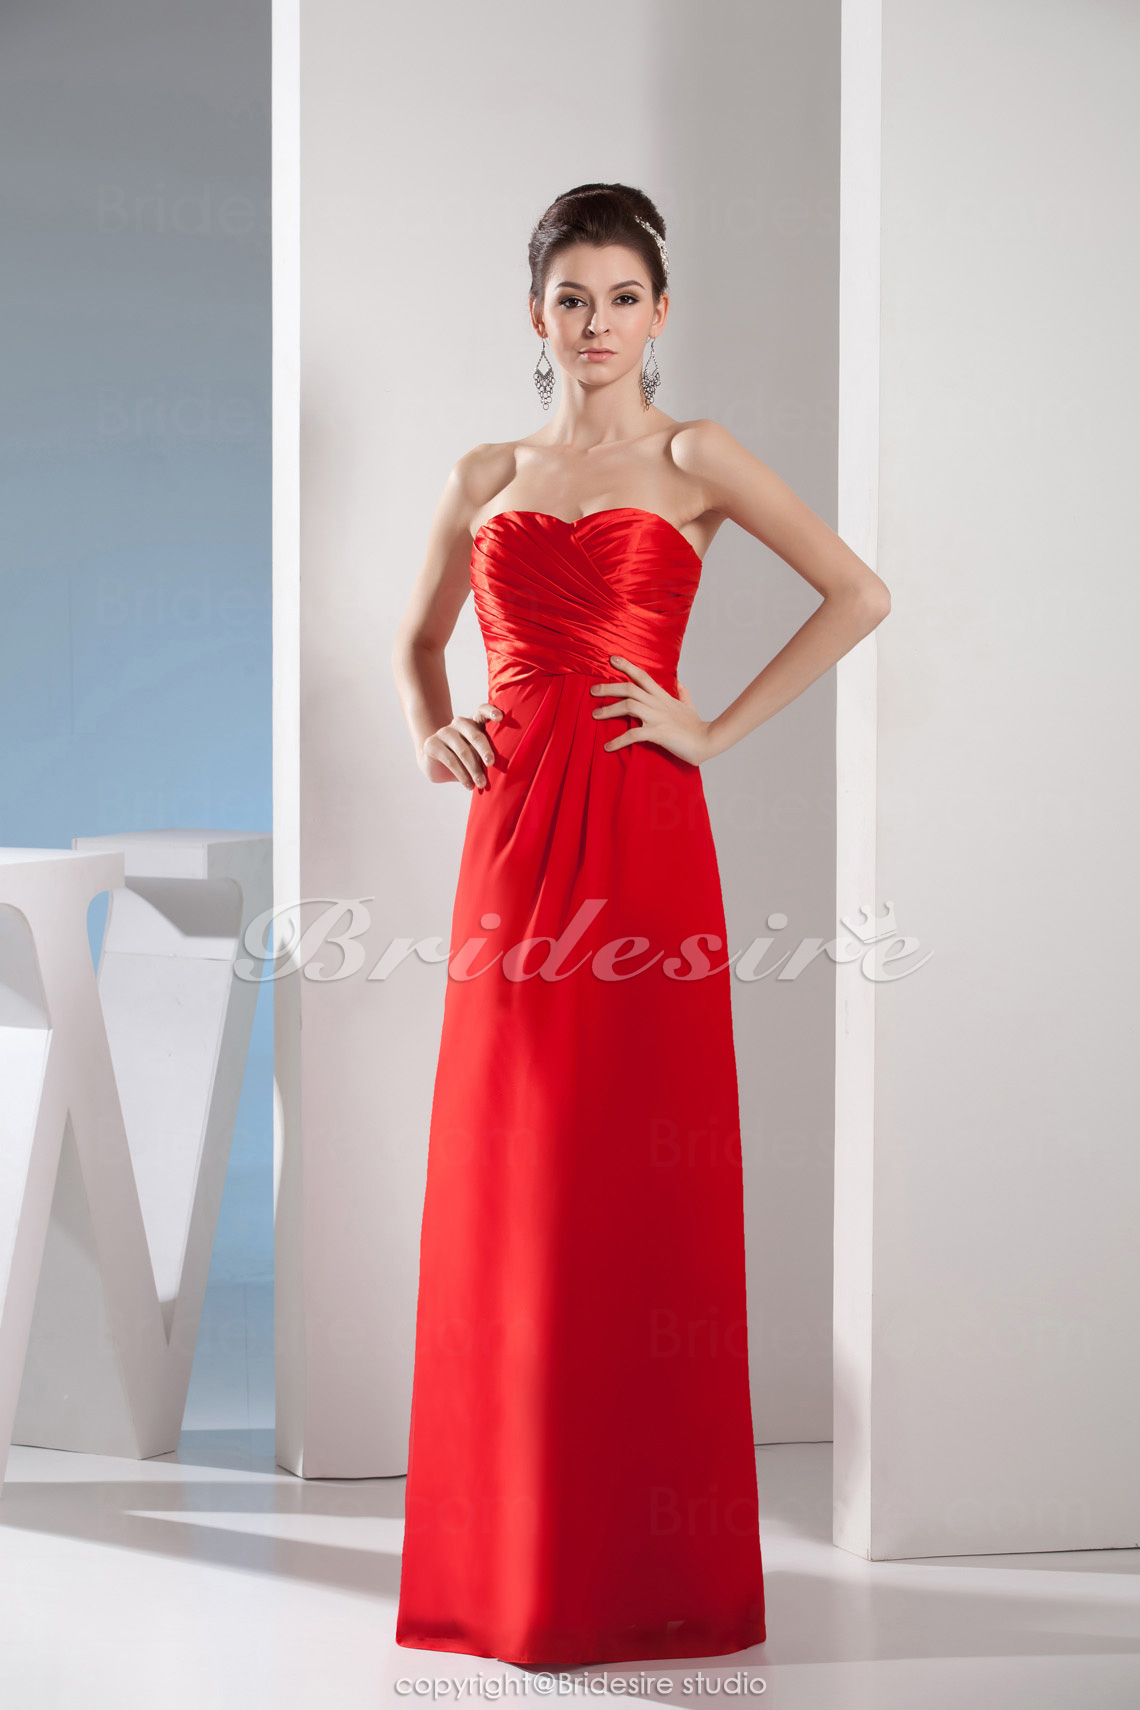 Sheath/Column Sweetheart Floor-length Sleeveless Satin Bridesmaid Dress